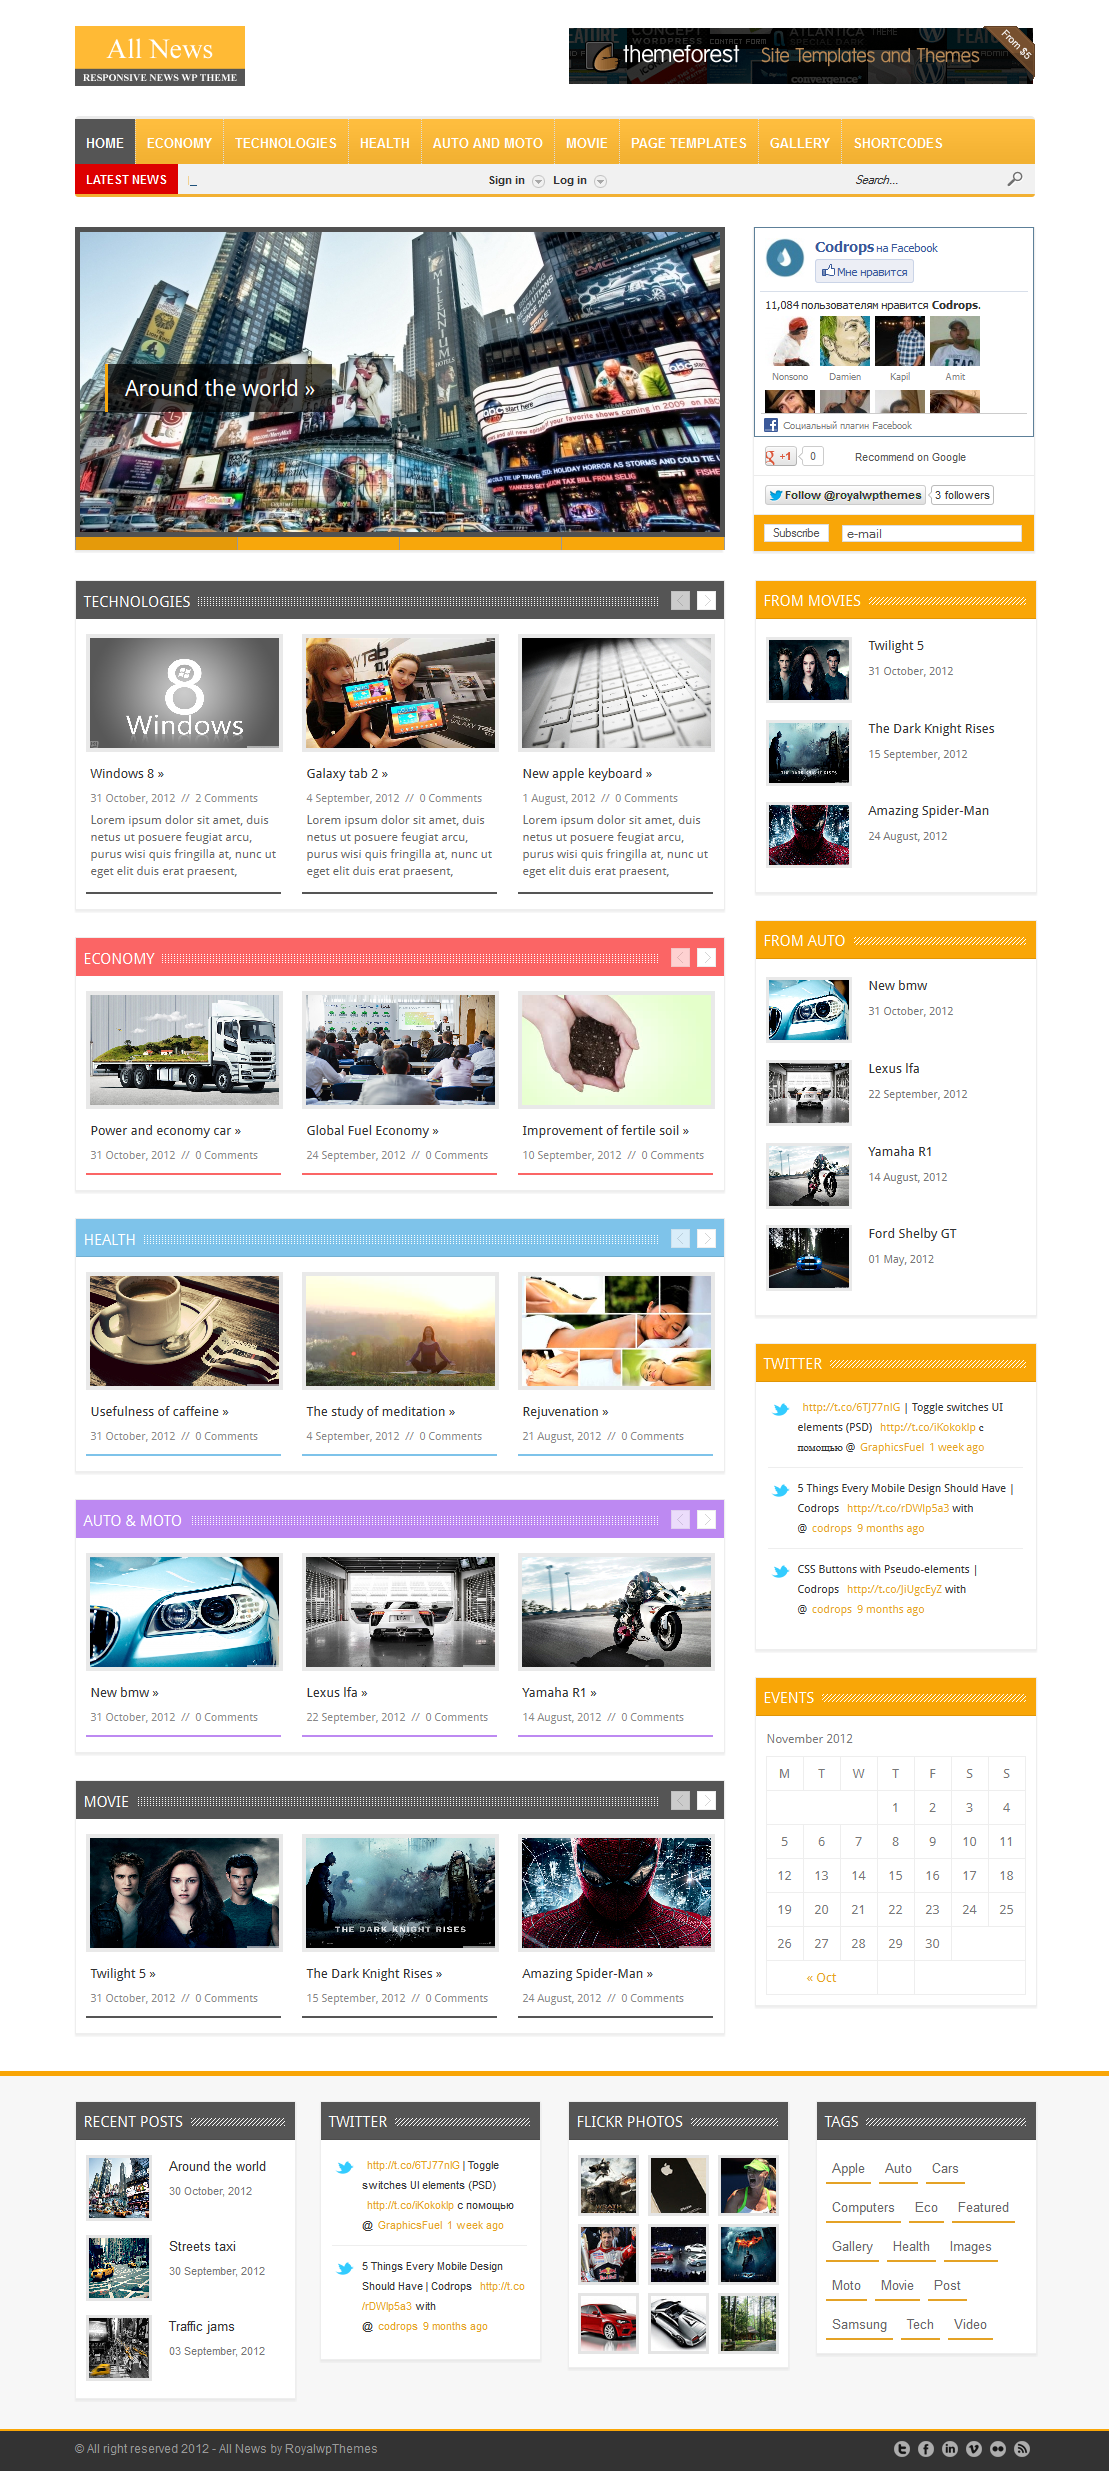 All News - Responsive WordPress News Theme